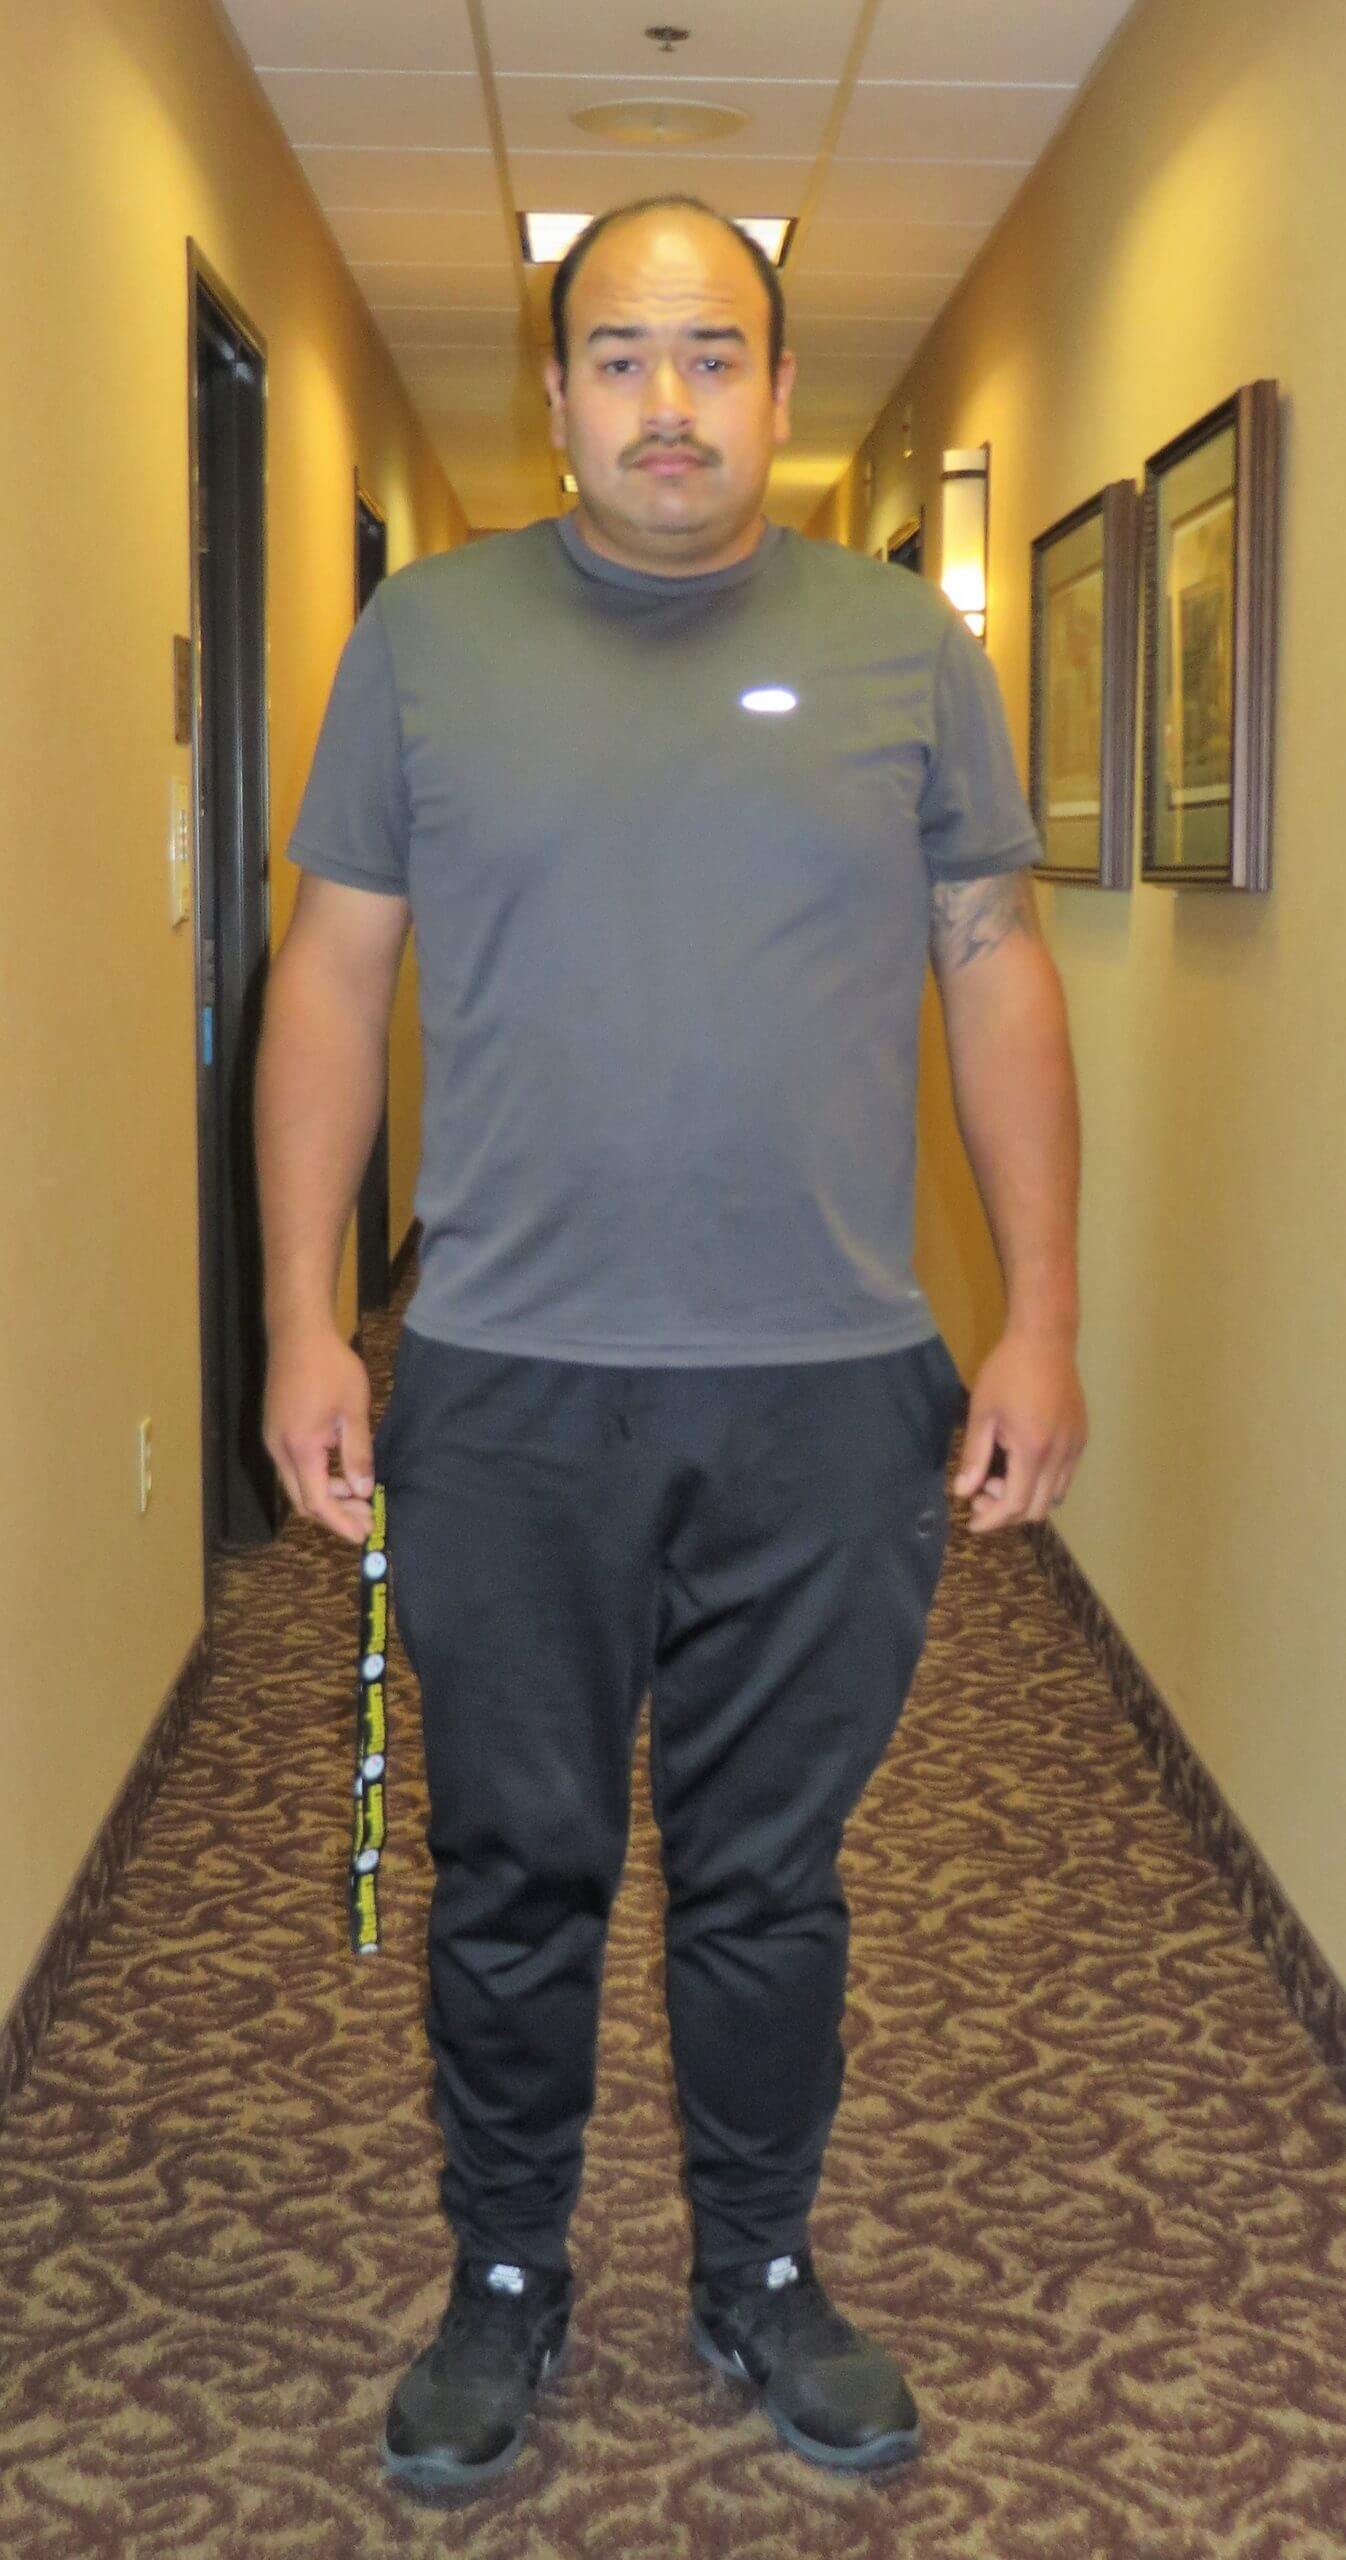 Abe-M-Bariatric-Surgery-After-With-Lap-Band-Surgery-Results-At-Davtyan-Medical-Weight-Loss-And-Wellness-Los-Angeles